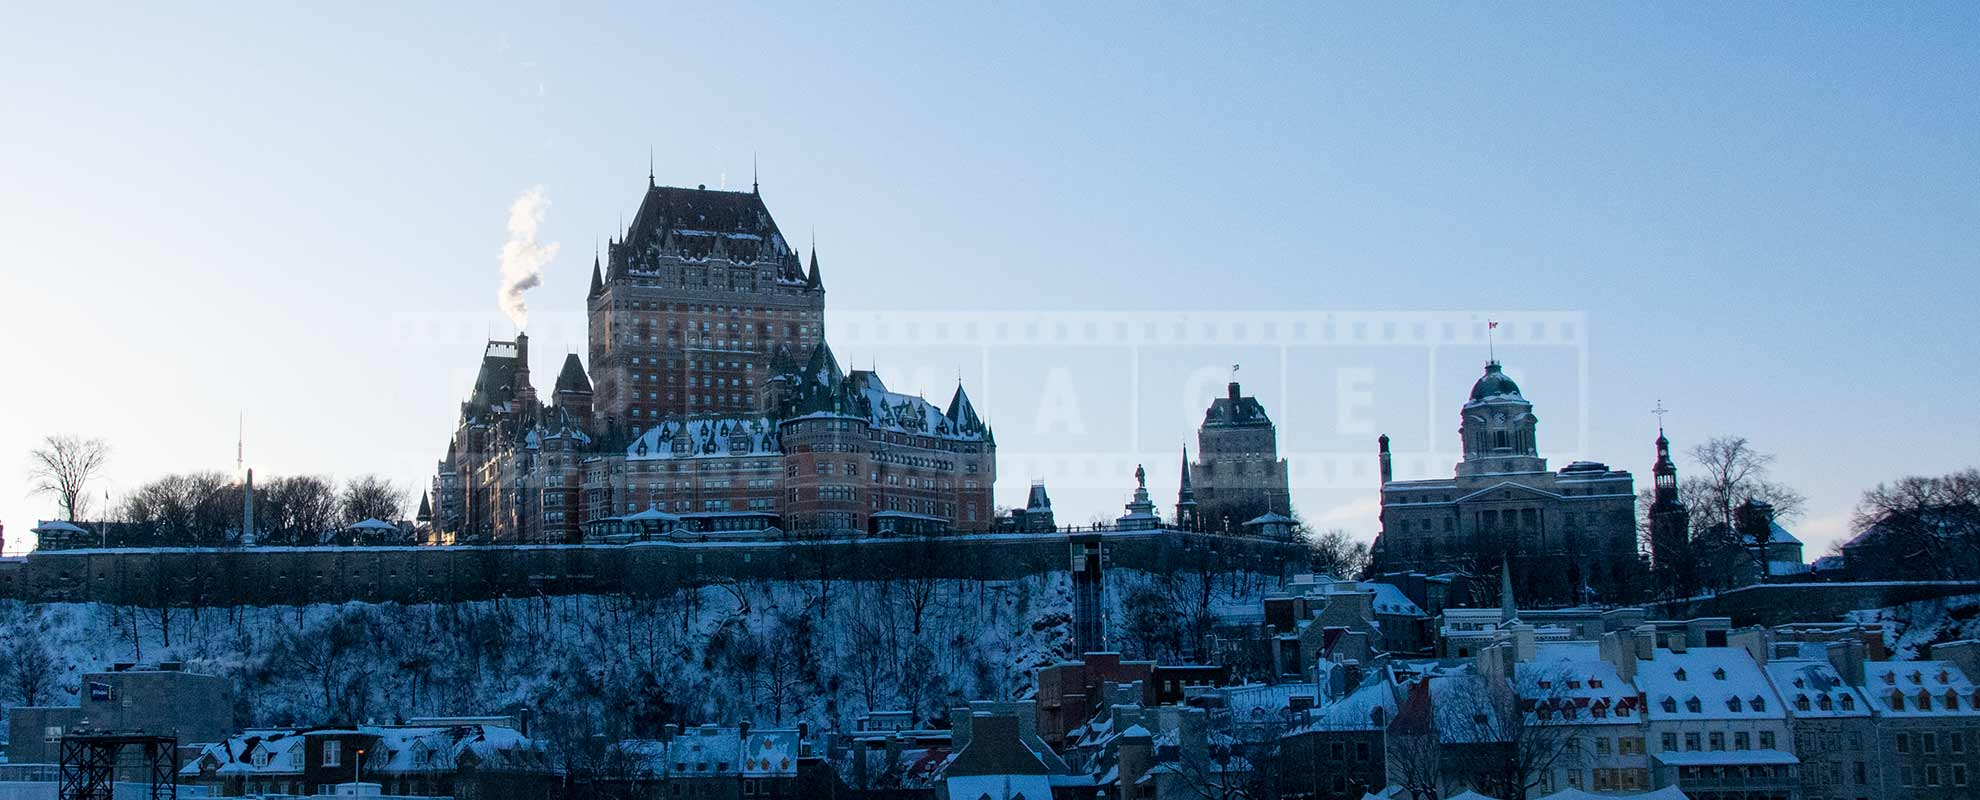 Chateau Frontenac seen from the Levis-Quebec ferry